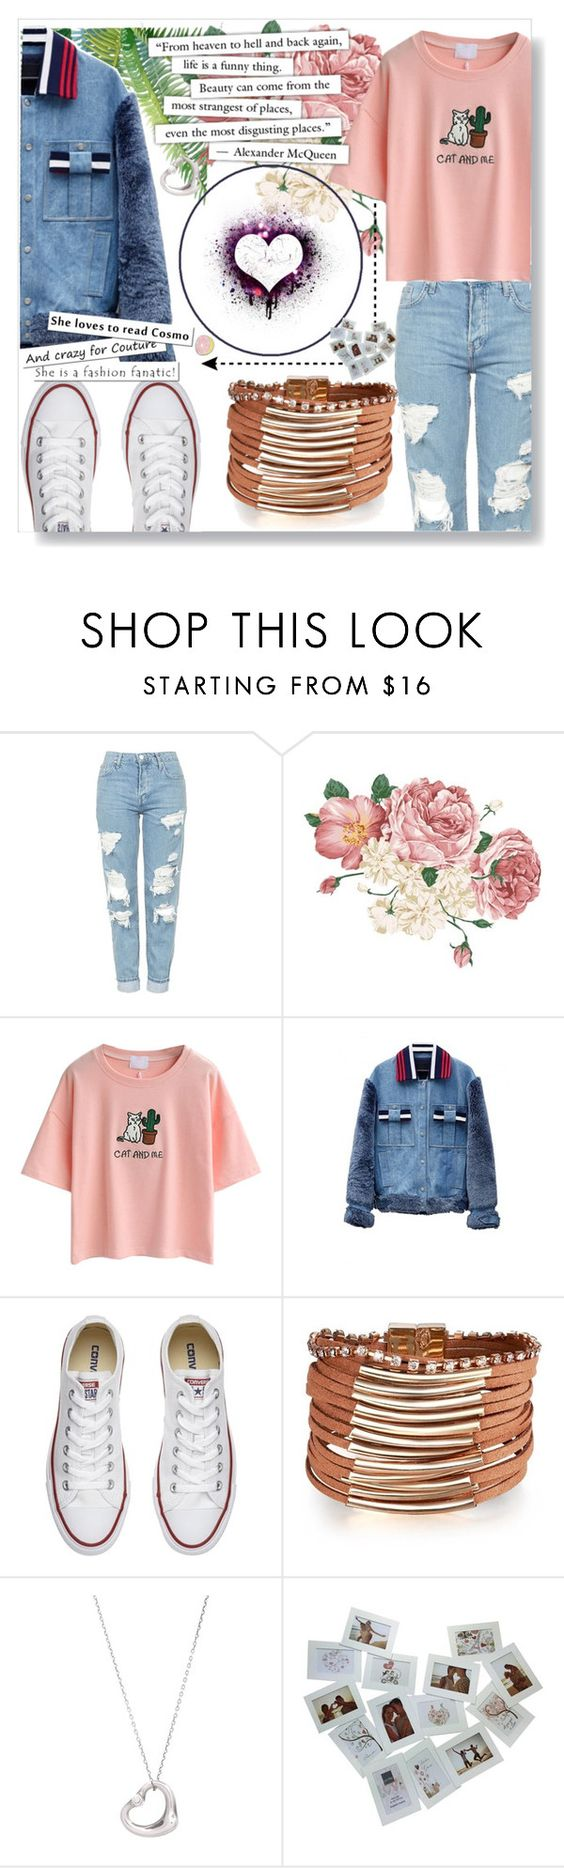 """""""She's a Fashion Fanatic"""" by twinkle-daisy ❤ liked on Polyvore featuring Topshop, WithChic, Jamie Wei Huang, Converse, Tiffany & Co. and Big Bud Press"""